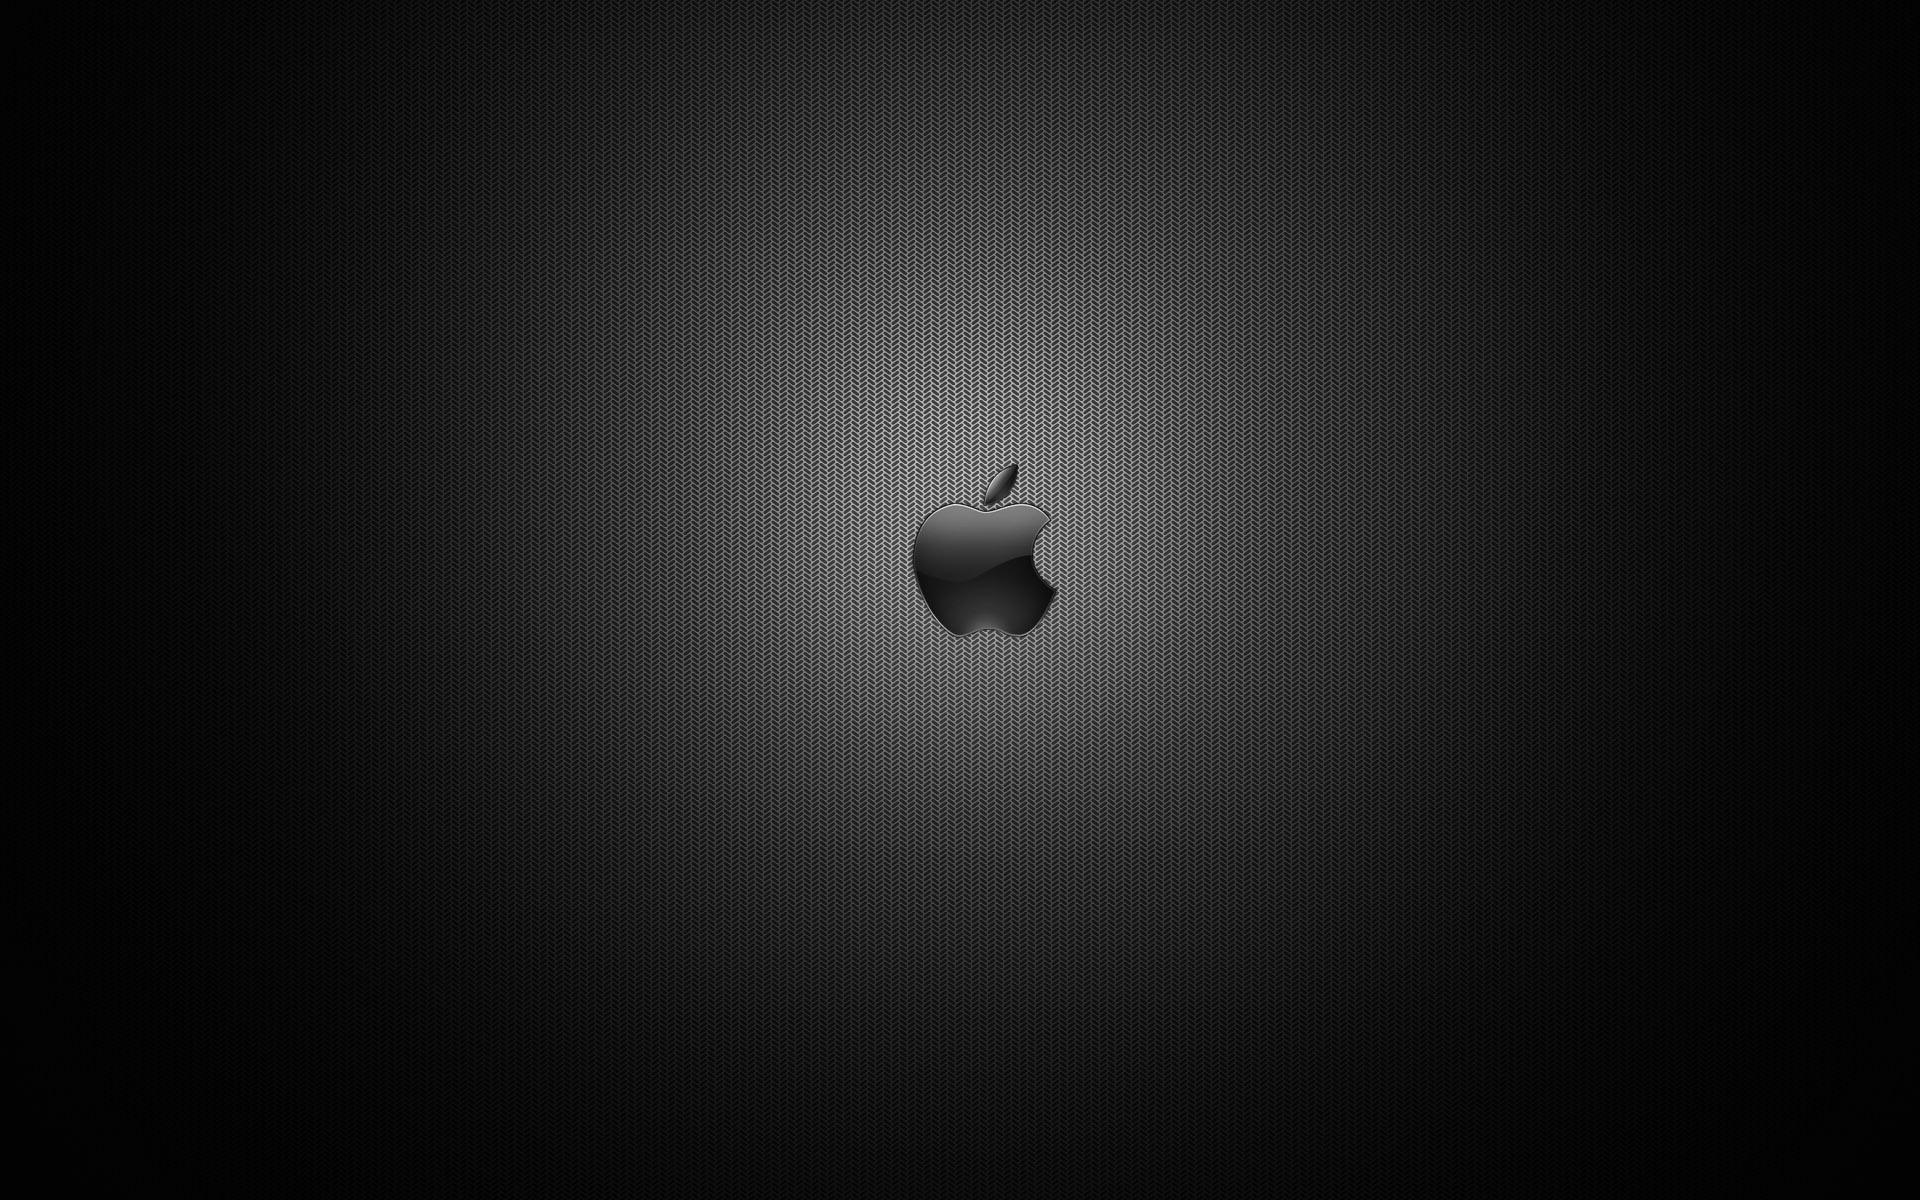 Dark Apple Logo Wallpapers HD Wallpapers 1920x1200